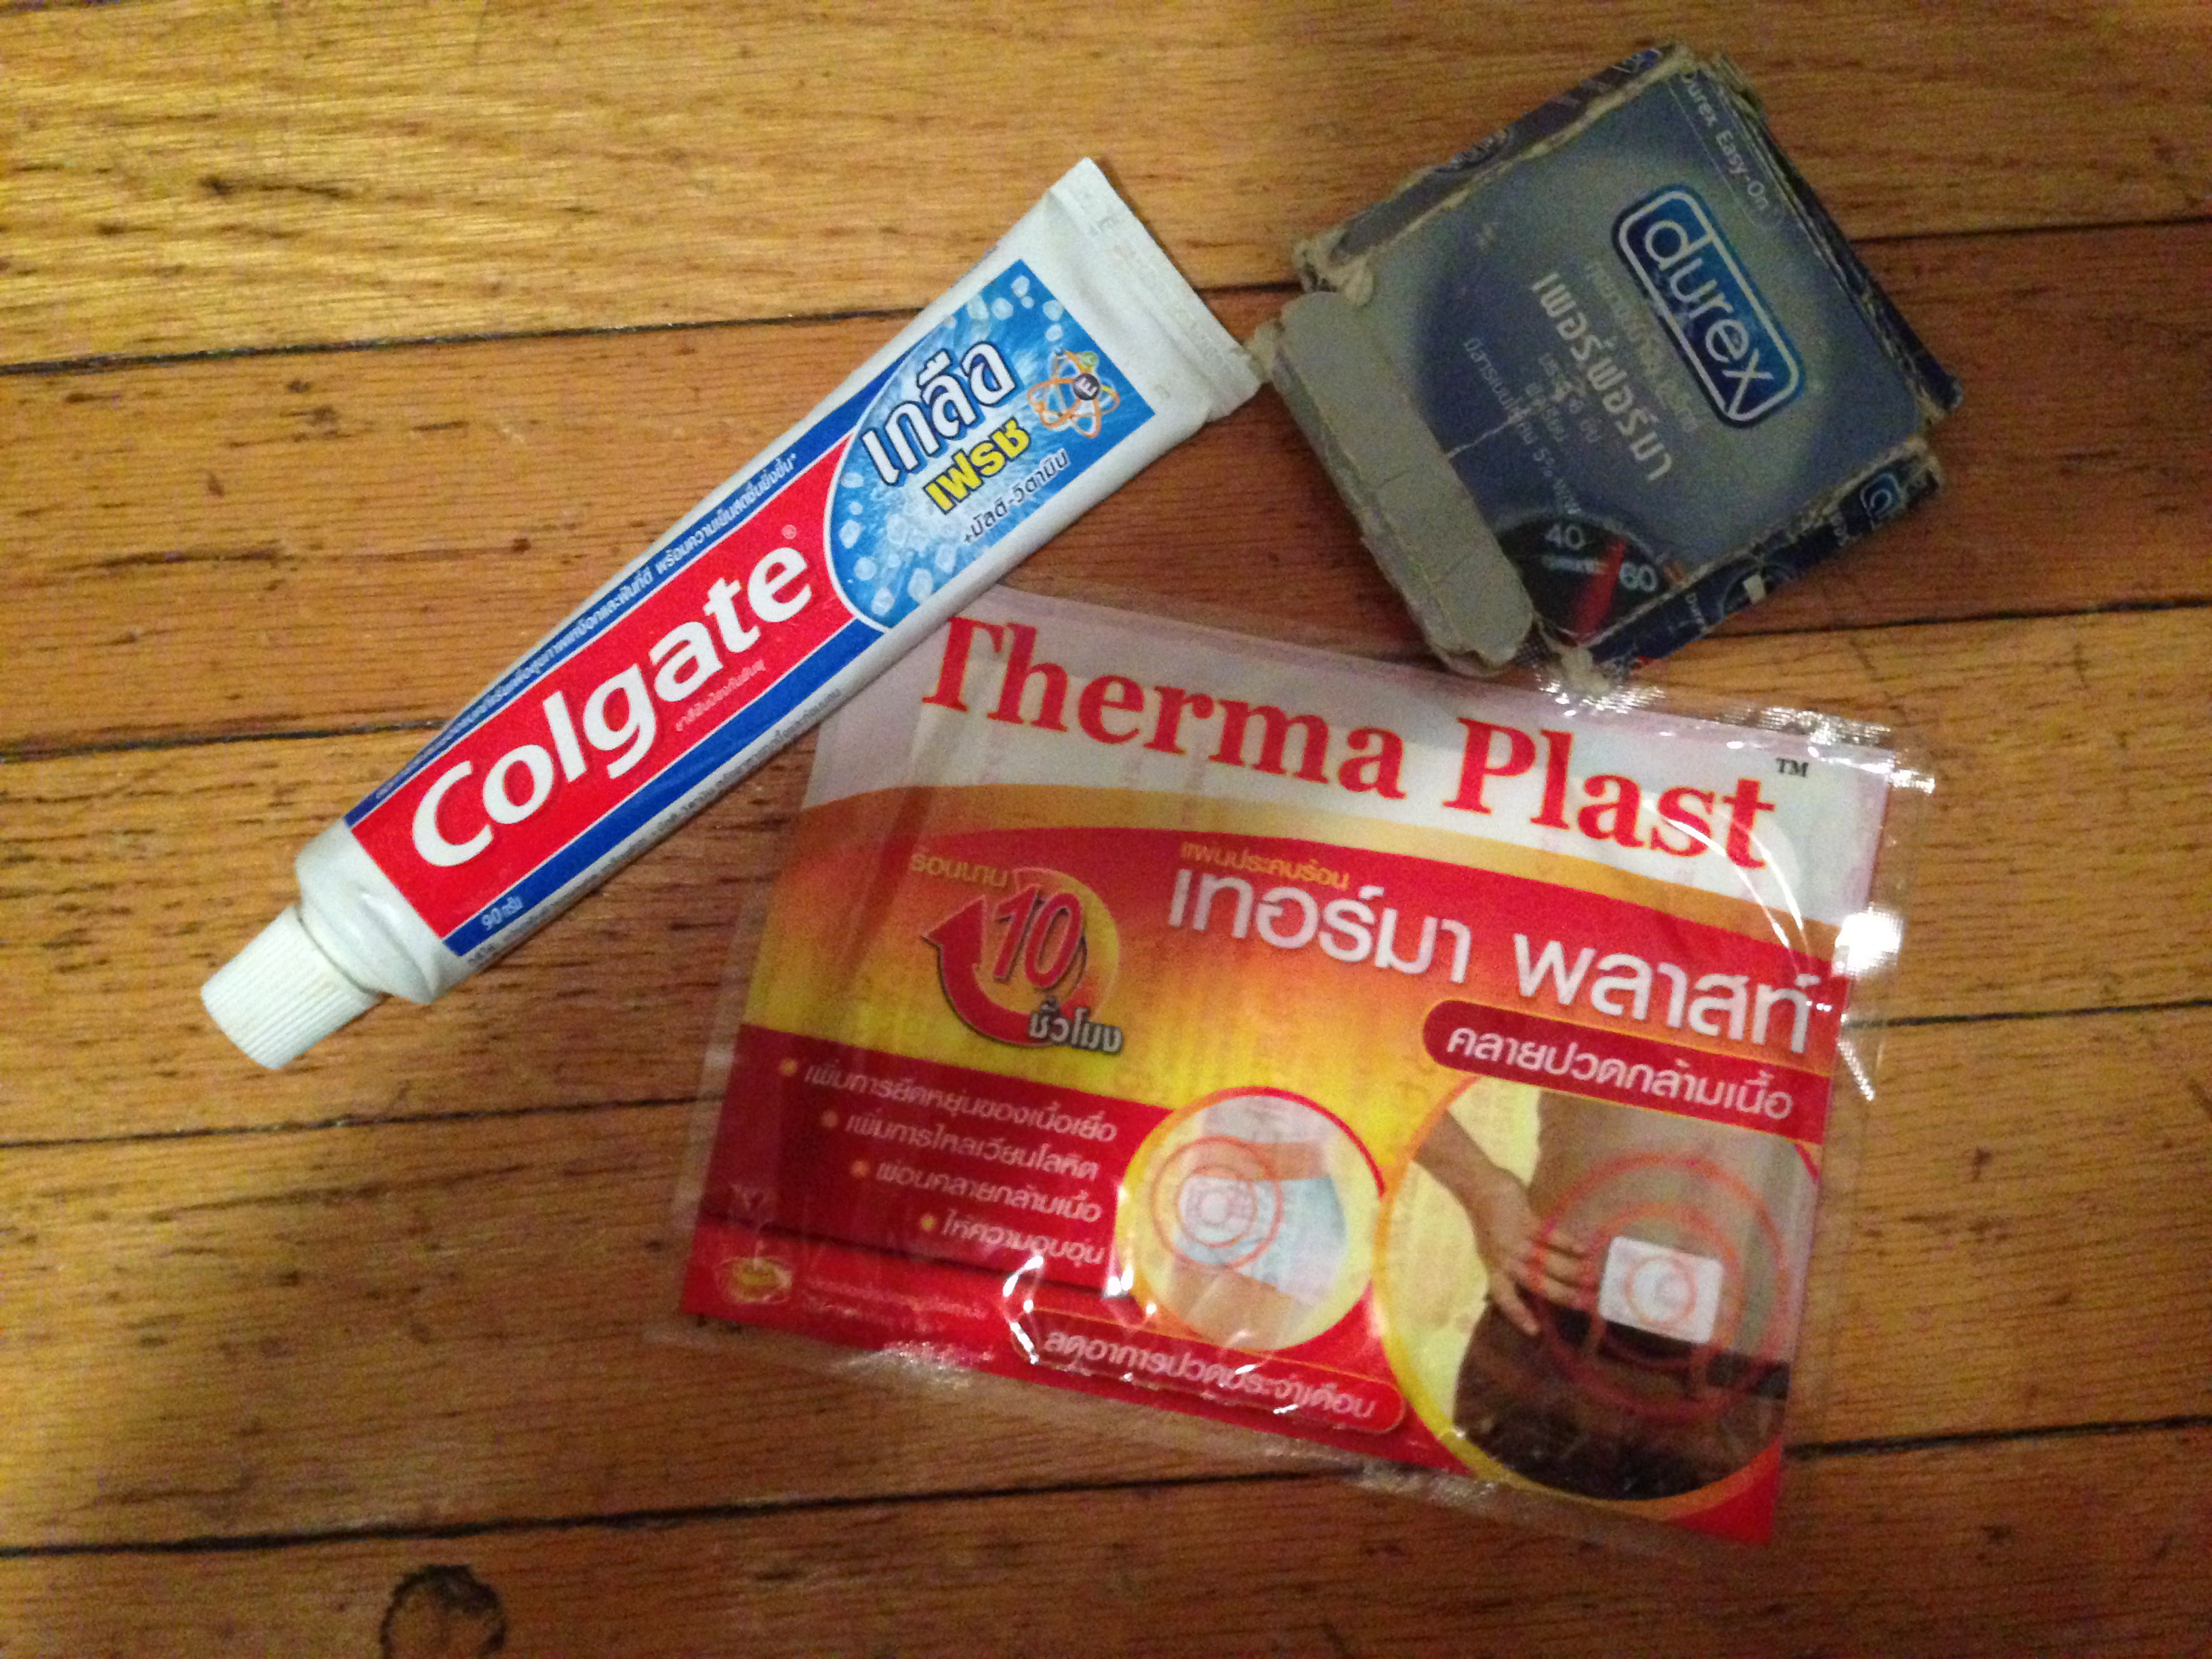 Thai salt toothpaste, condoms, and back pads.